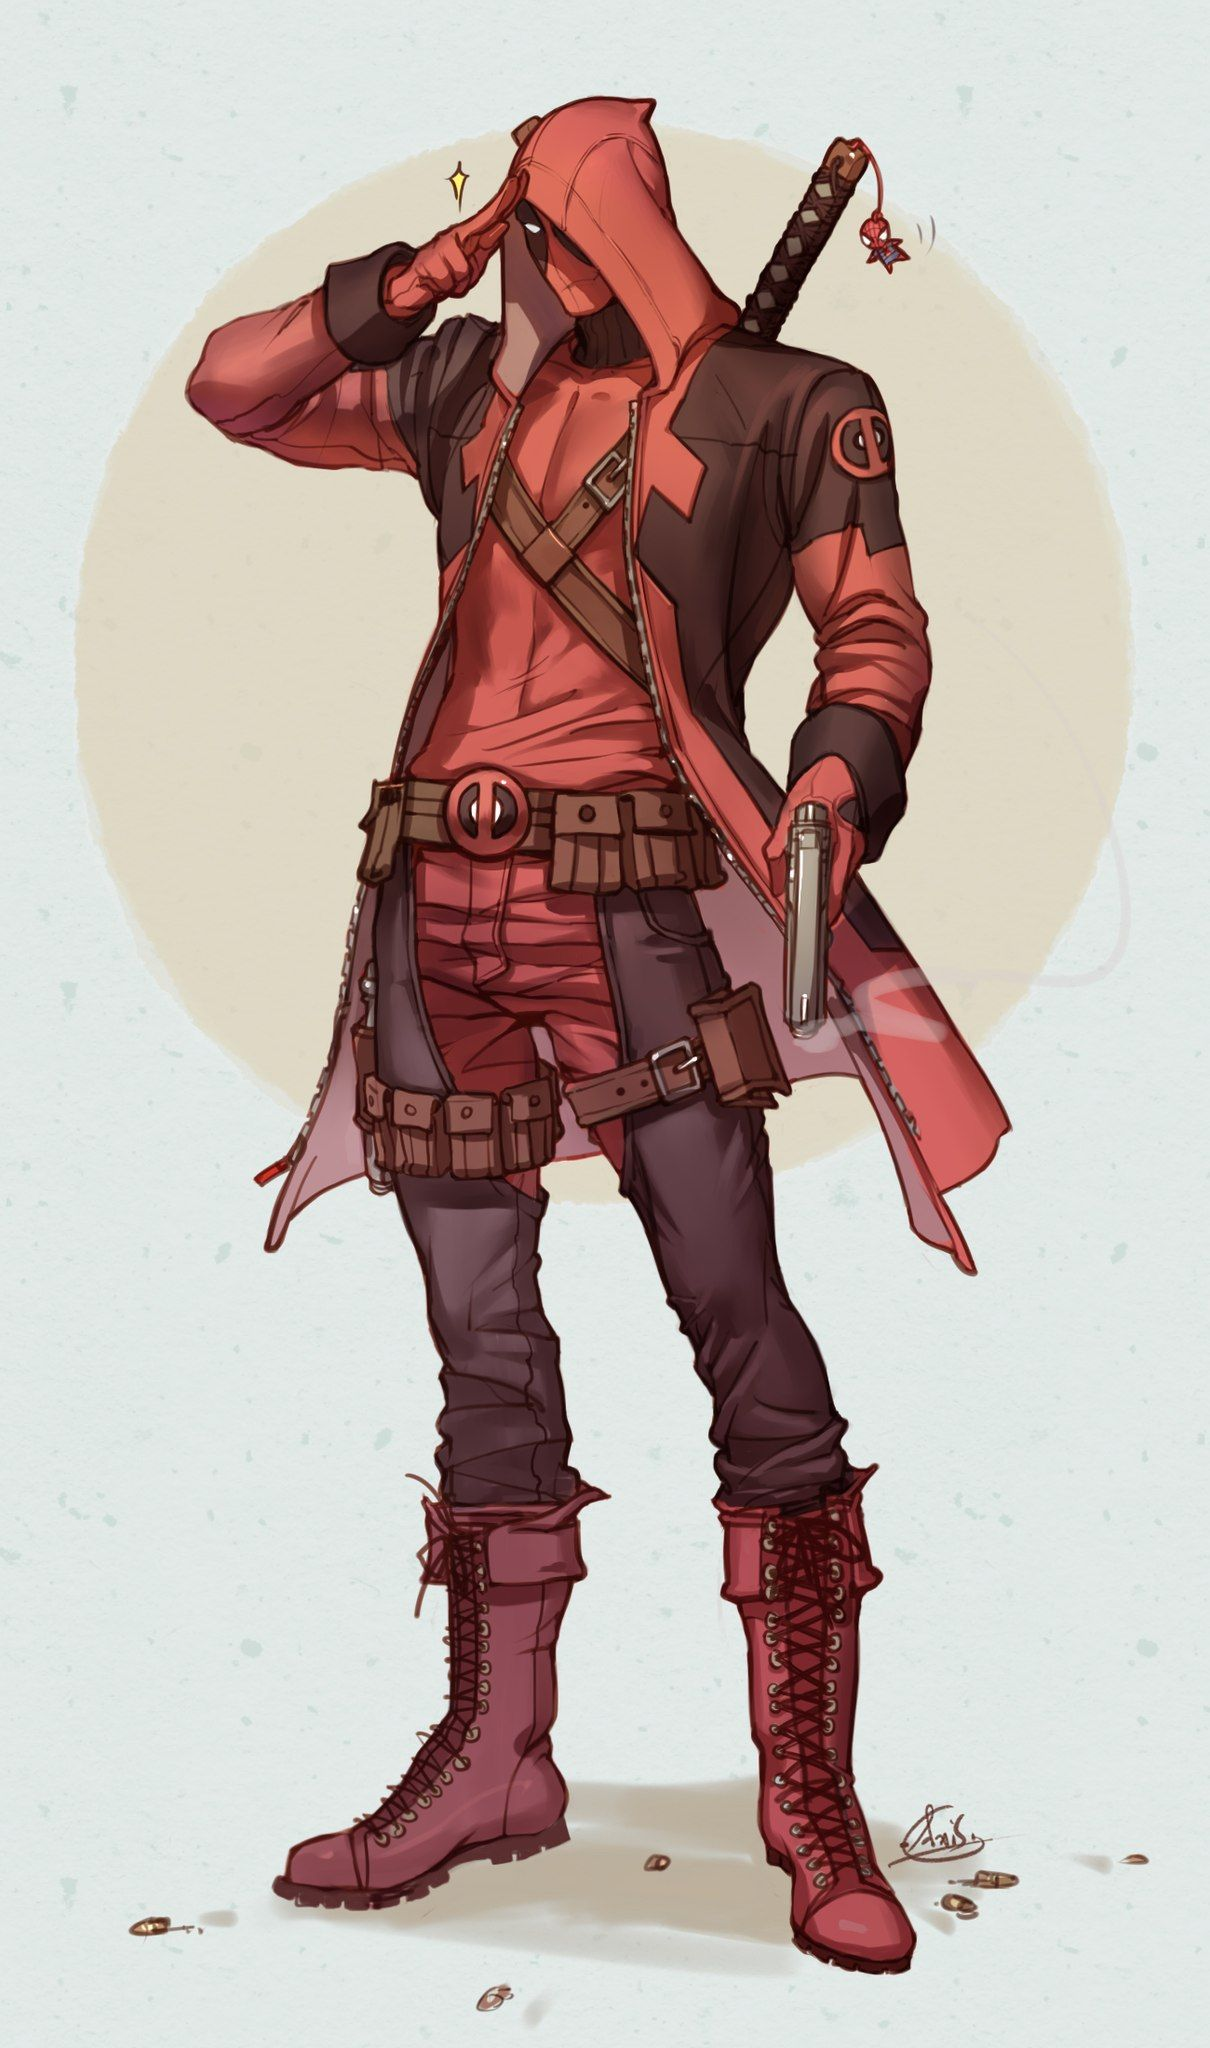 Pin By Baltazar Gamis On Art For Your Consideration Pinterest Only The Reason Why I Know About Assassin Creed Is My Brother Oh And If You Want Me To Do A Board Or Any Thing Then Comment Down Below